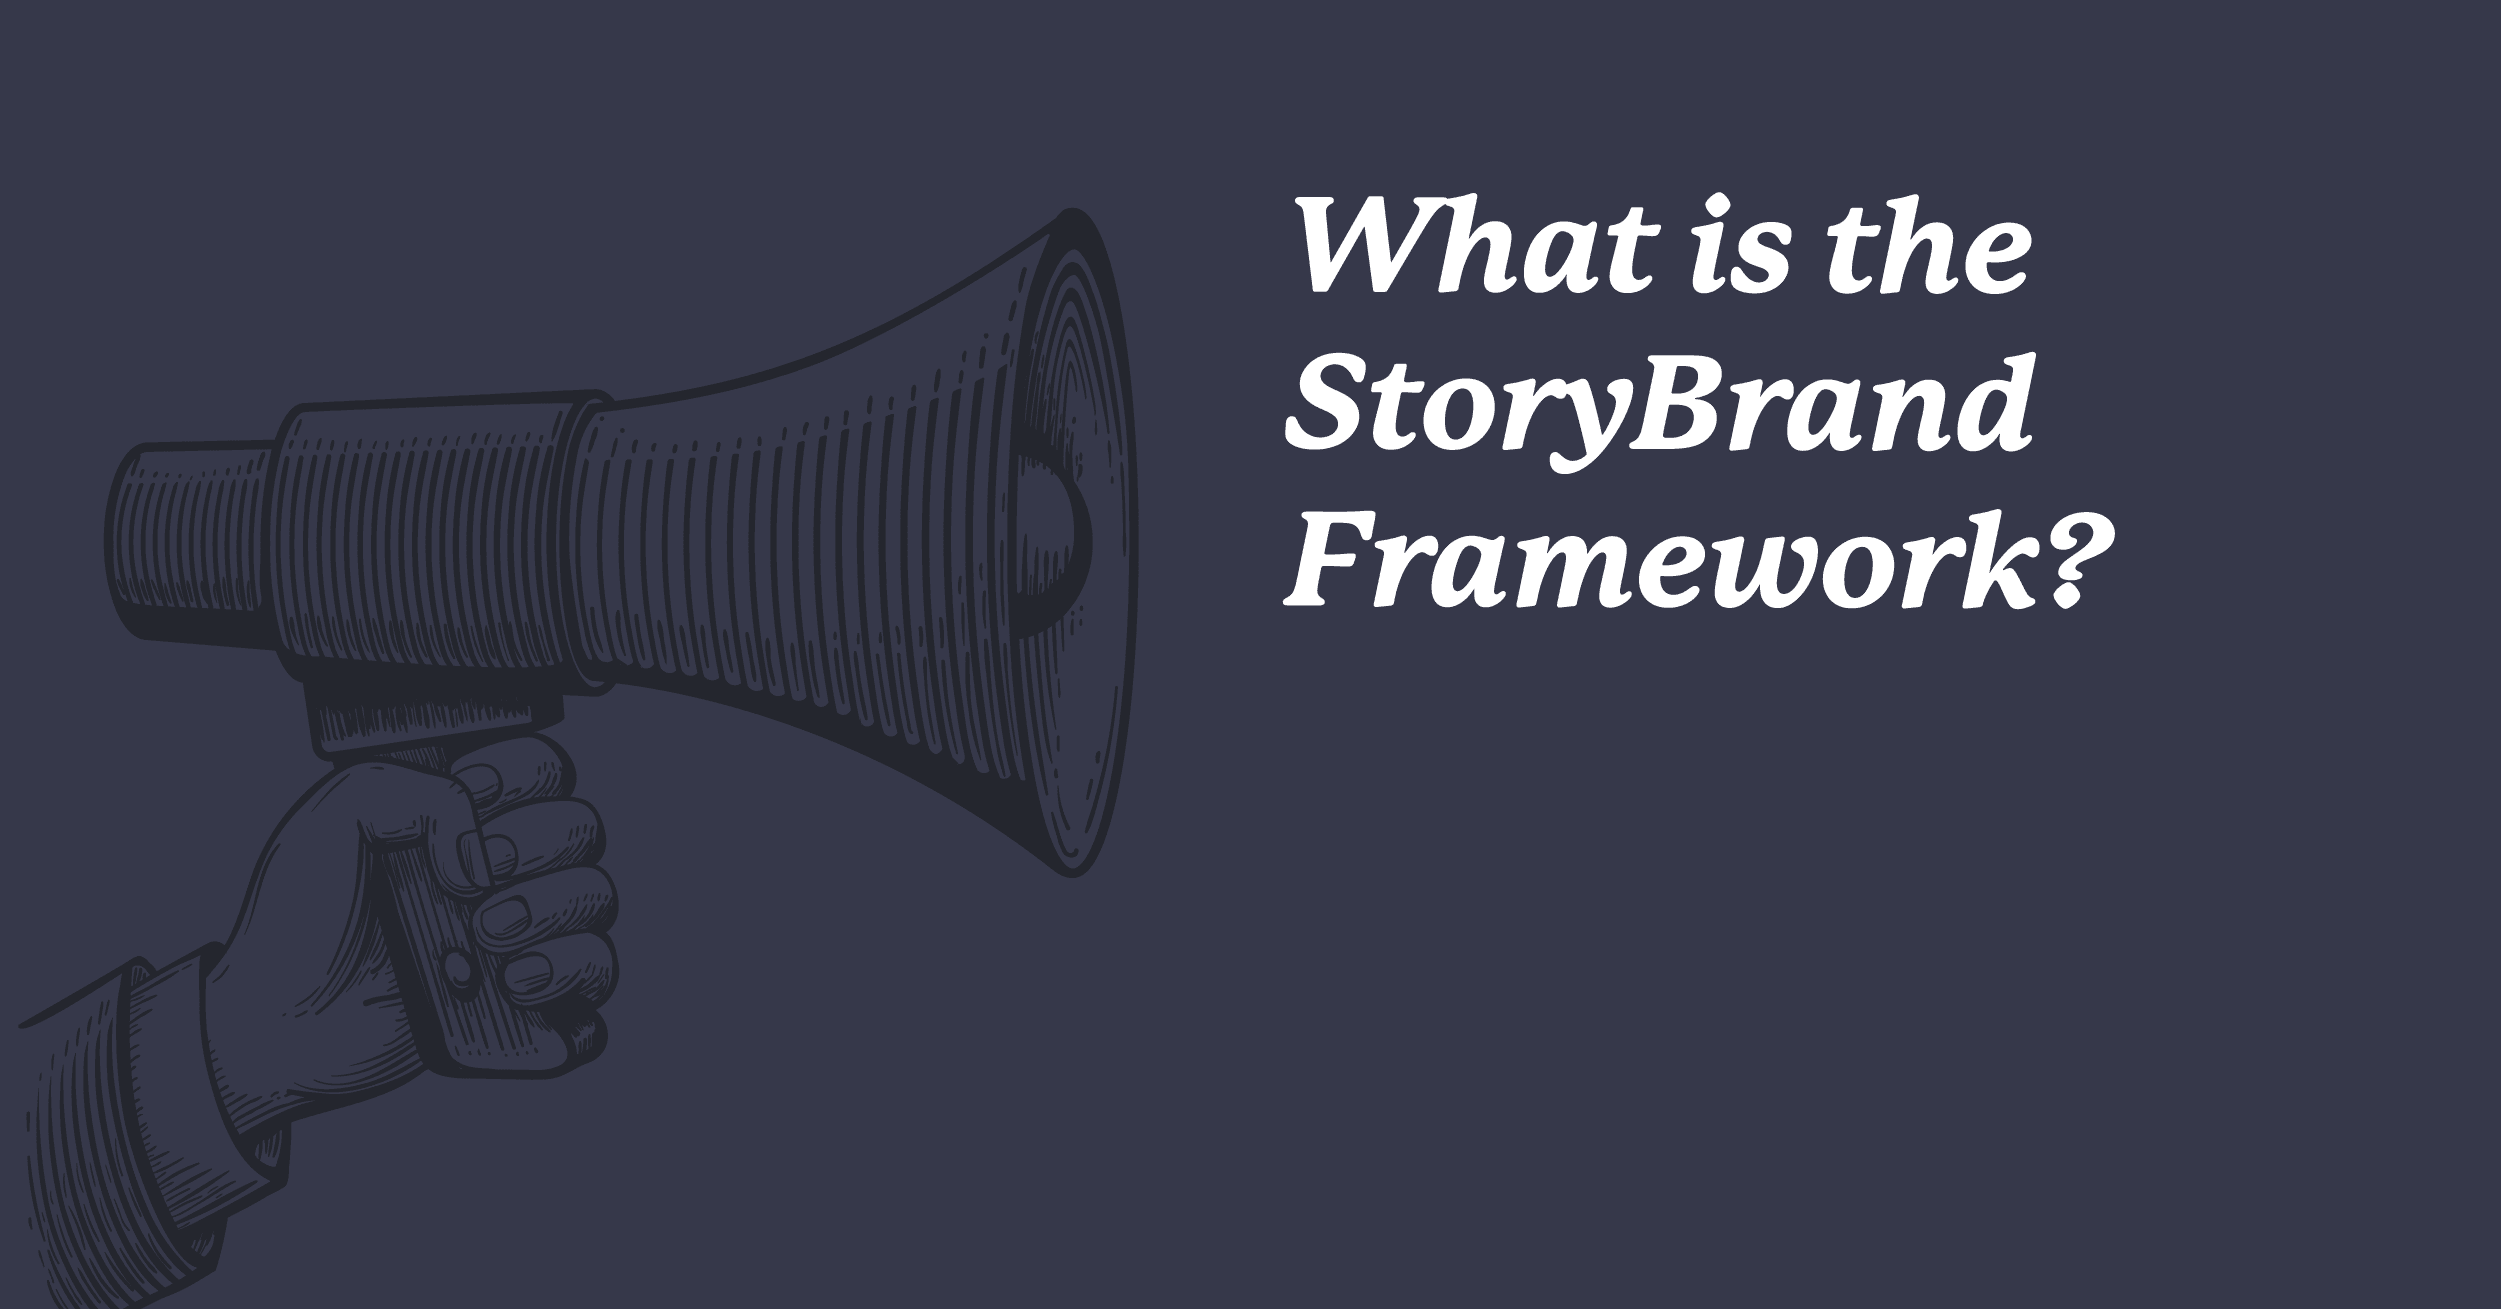 What Is the StoryBrand Framework?